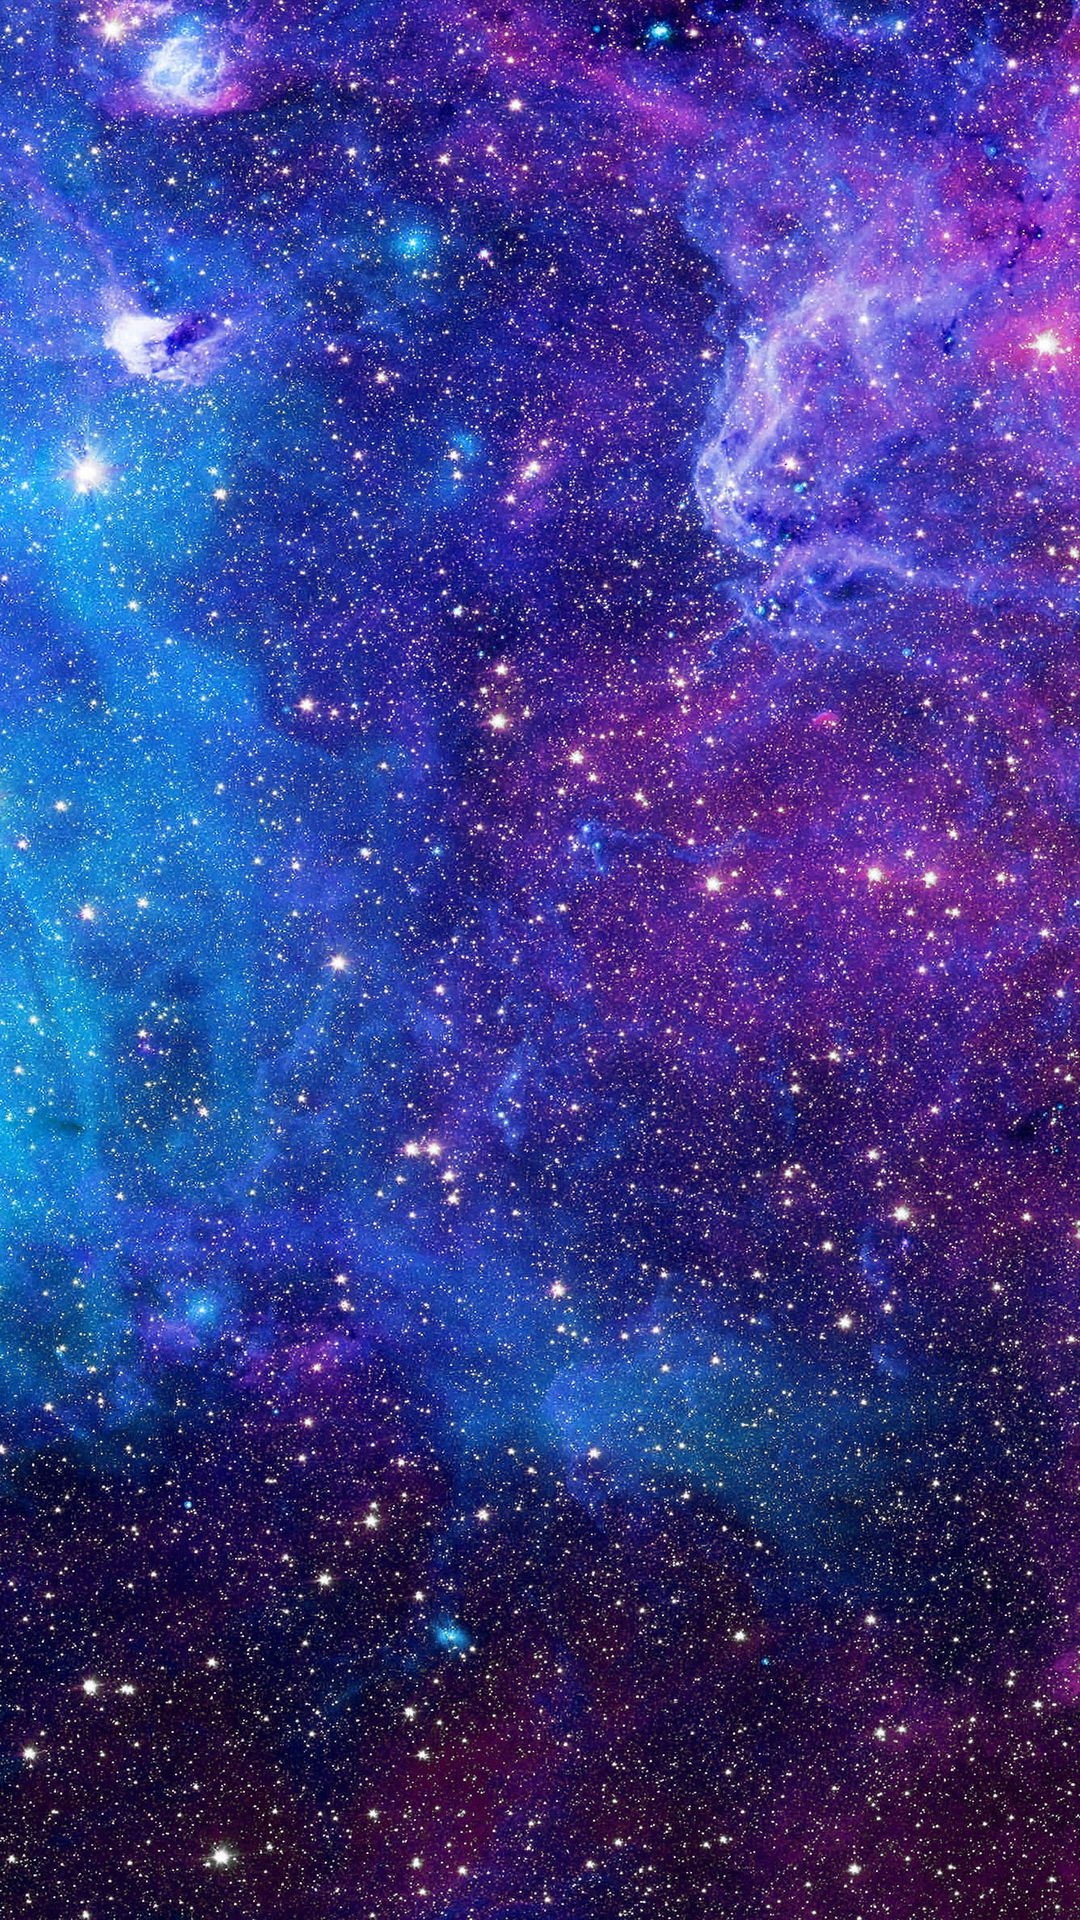 stars galaxy hd wallpaper background Vũ trụ, Kỳ ảo